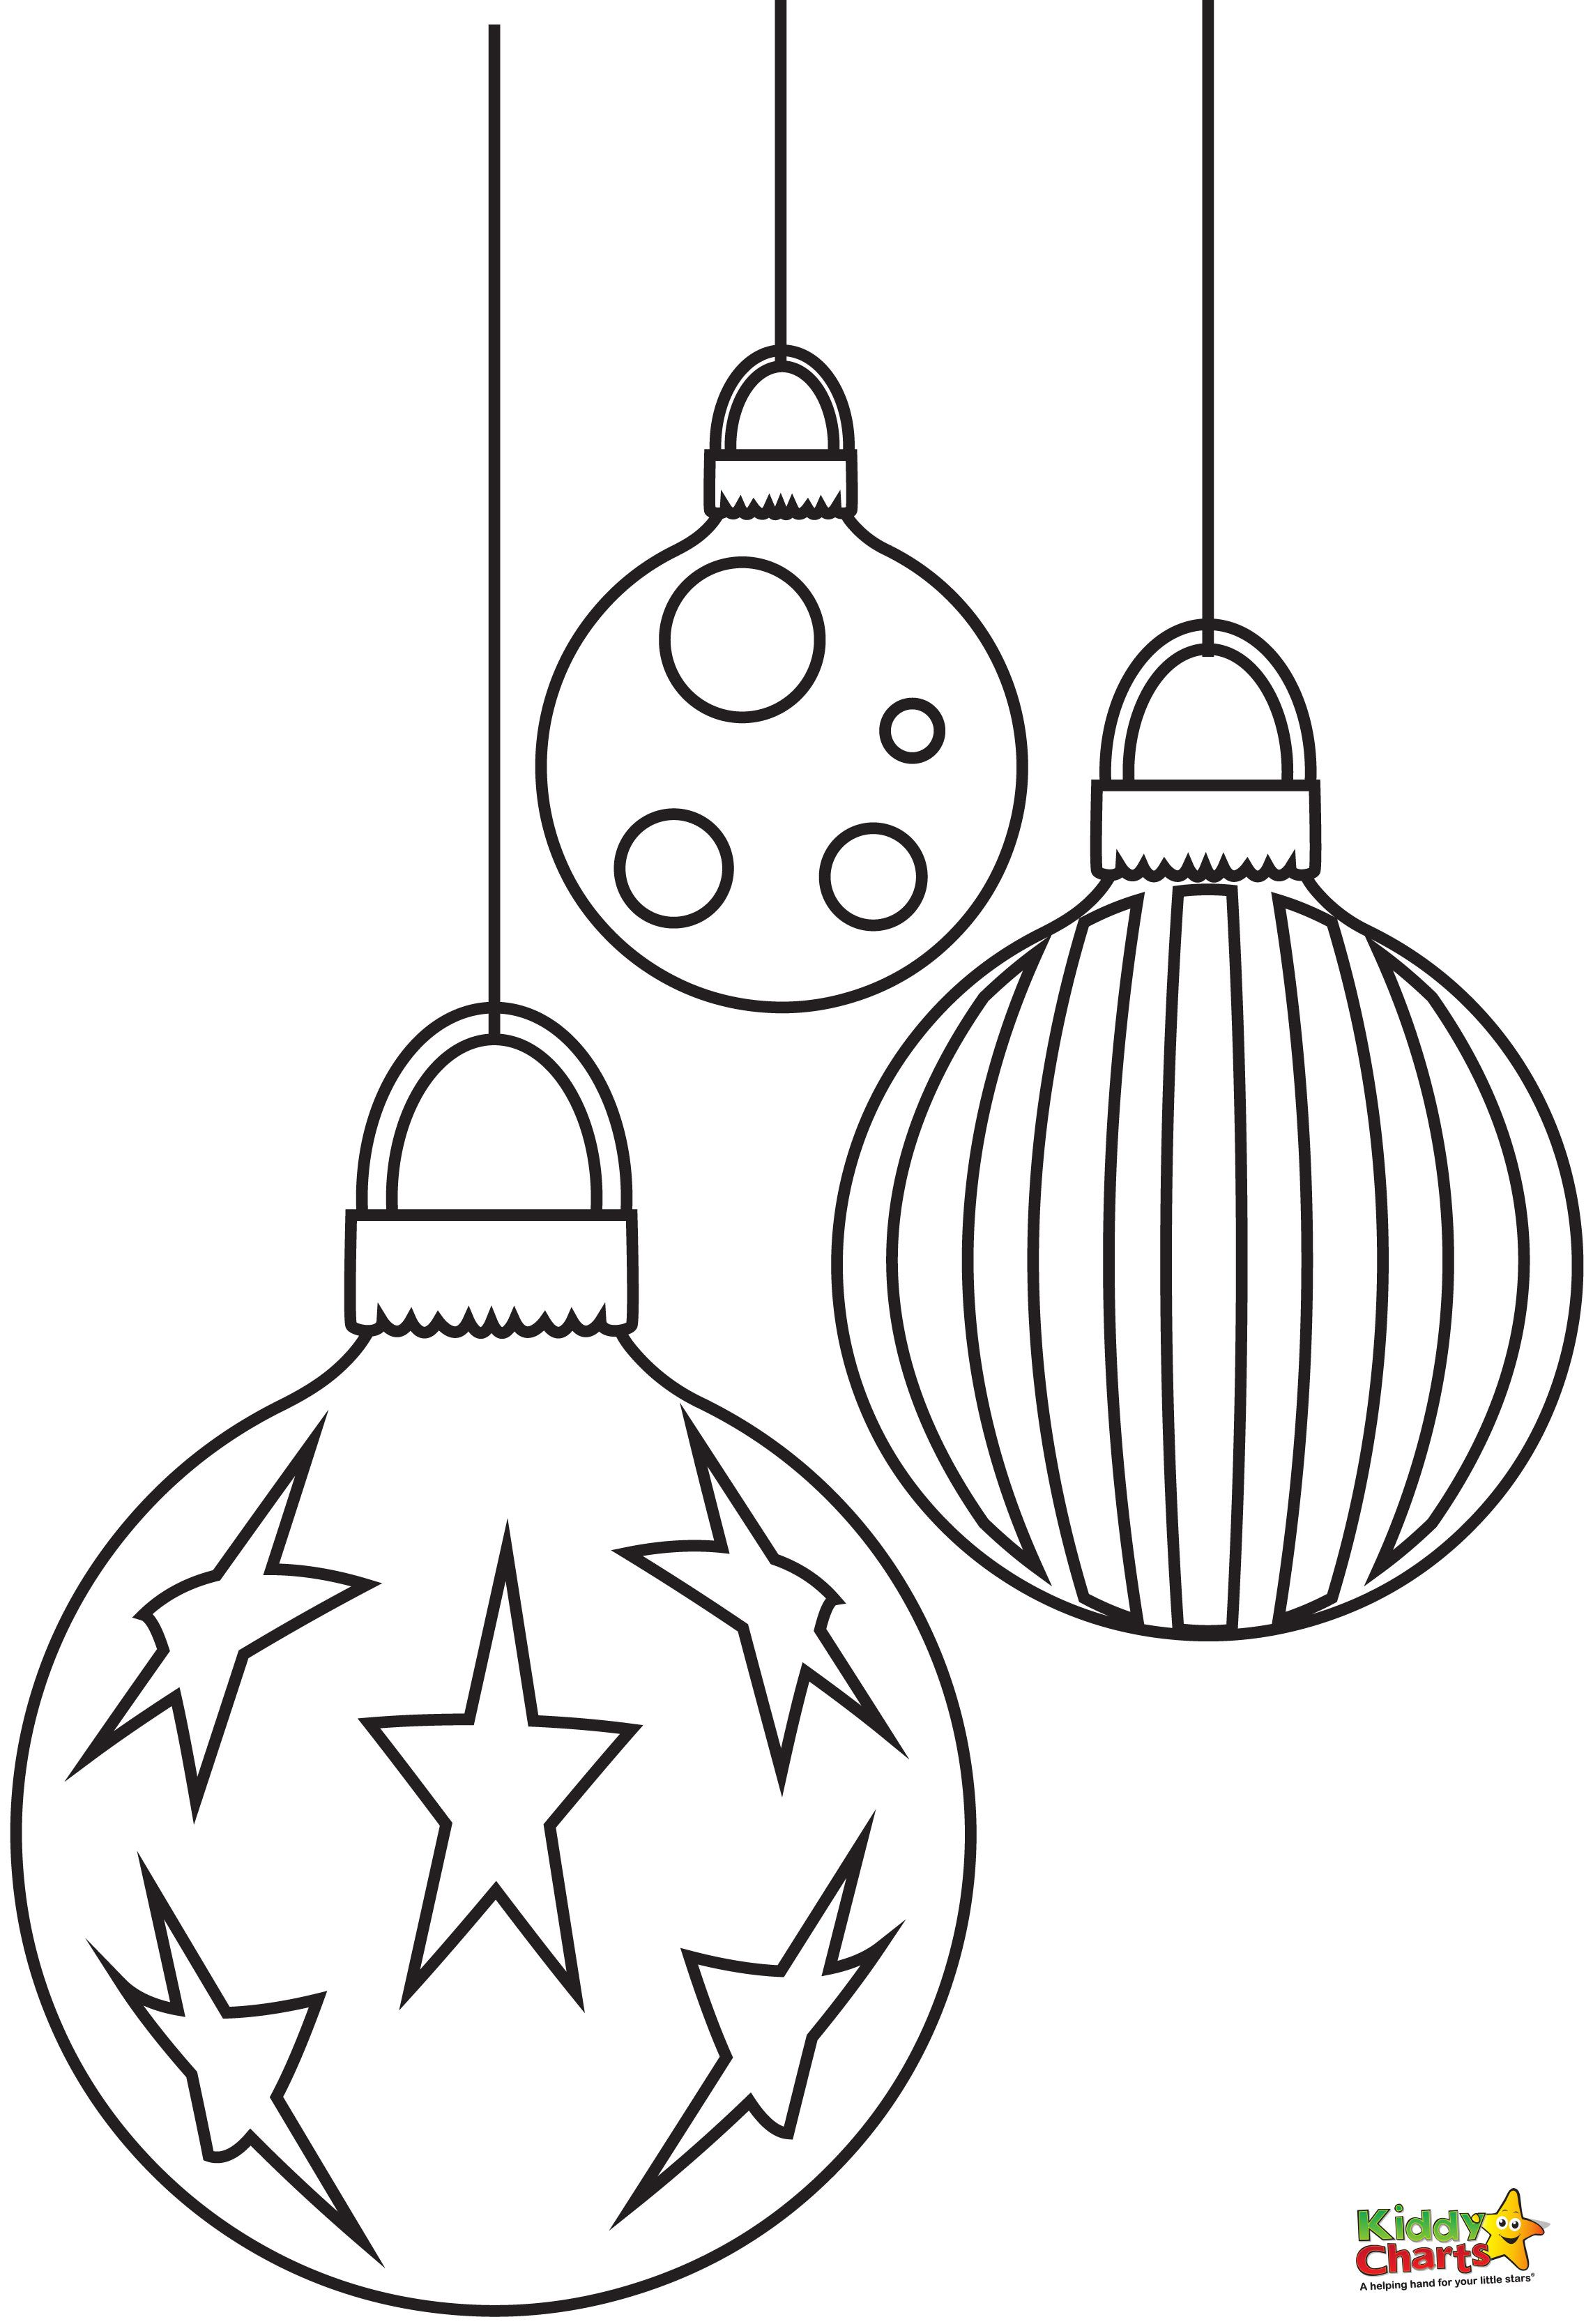 Christmas Ball Printable Coloring Pages With Baubles Free From Pinterest